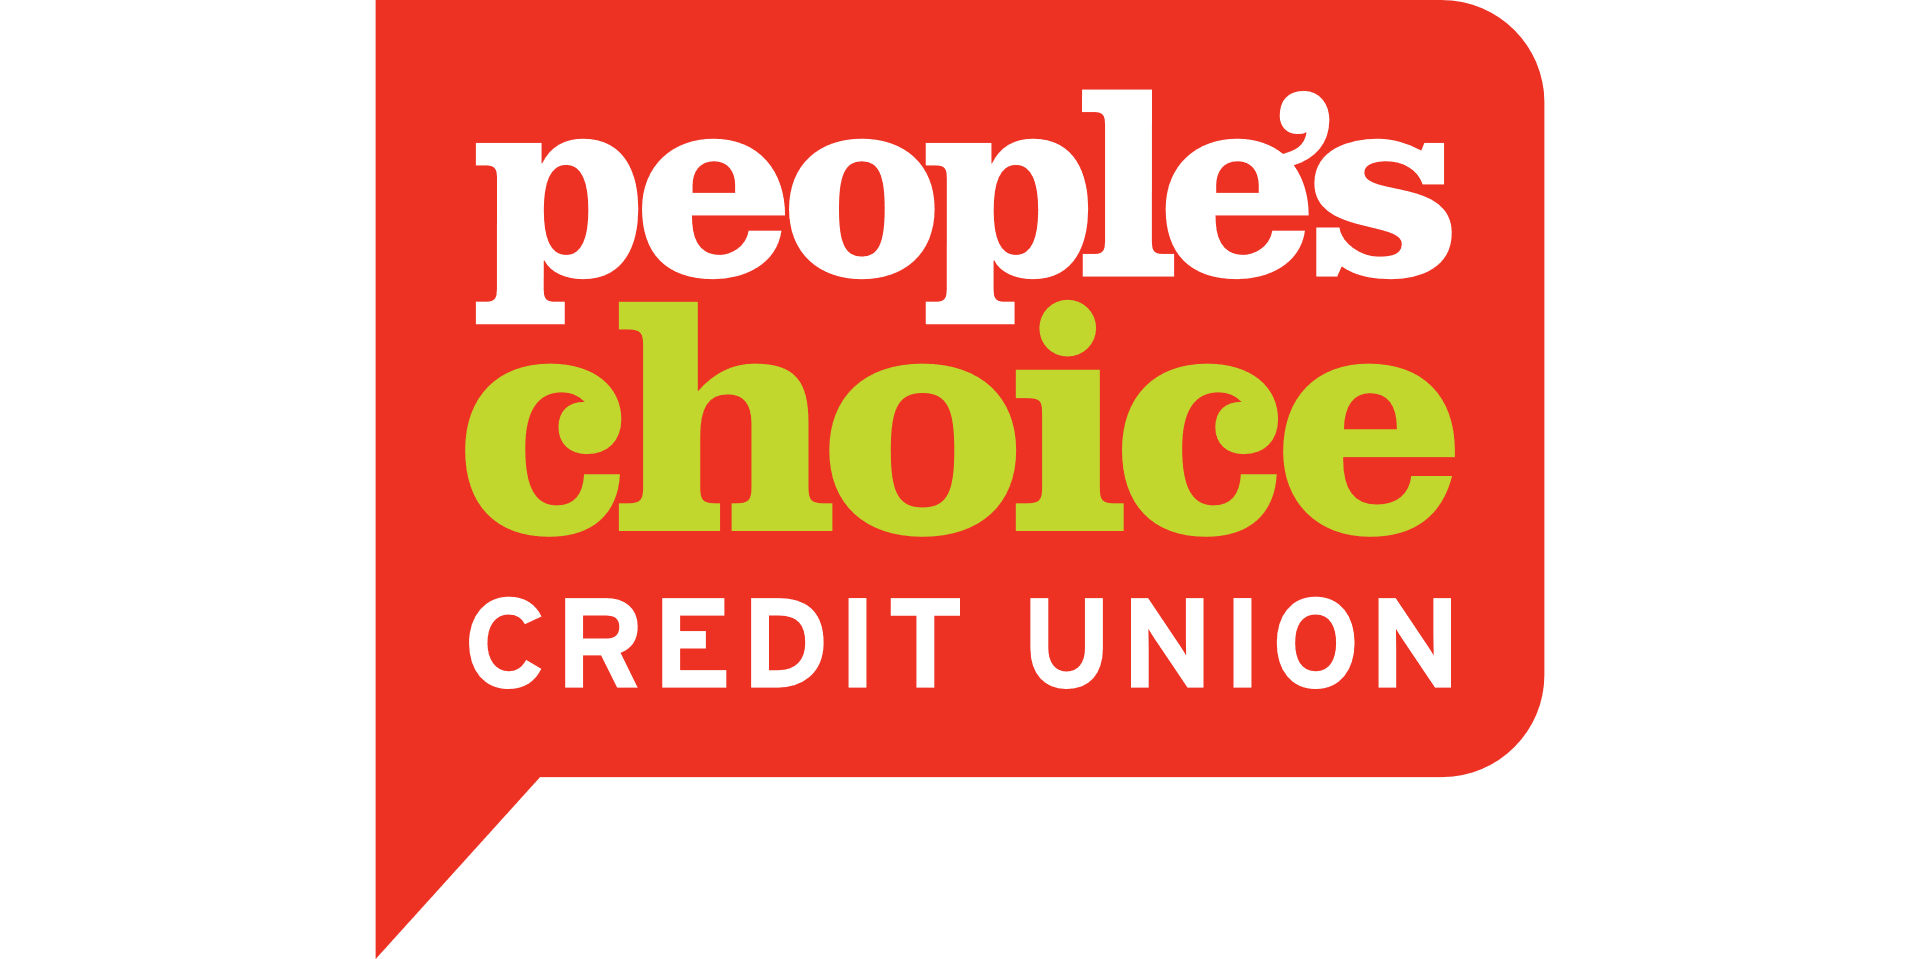 People's Choice Credit Union - Naracoorte, SA 5271 - (01) 3118 1182 | ShowMeLocal.com